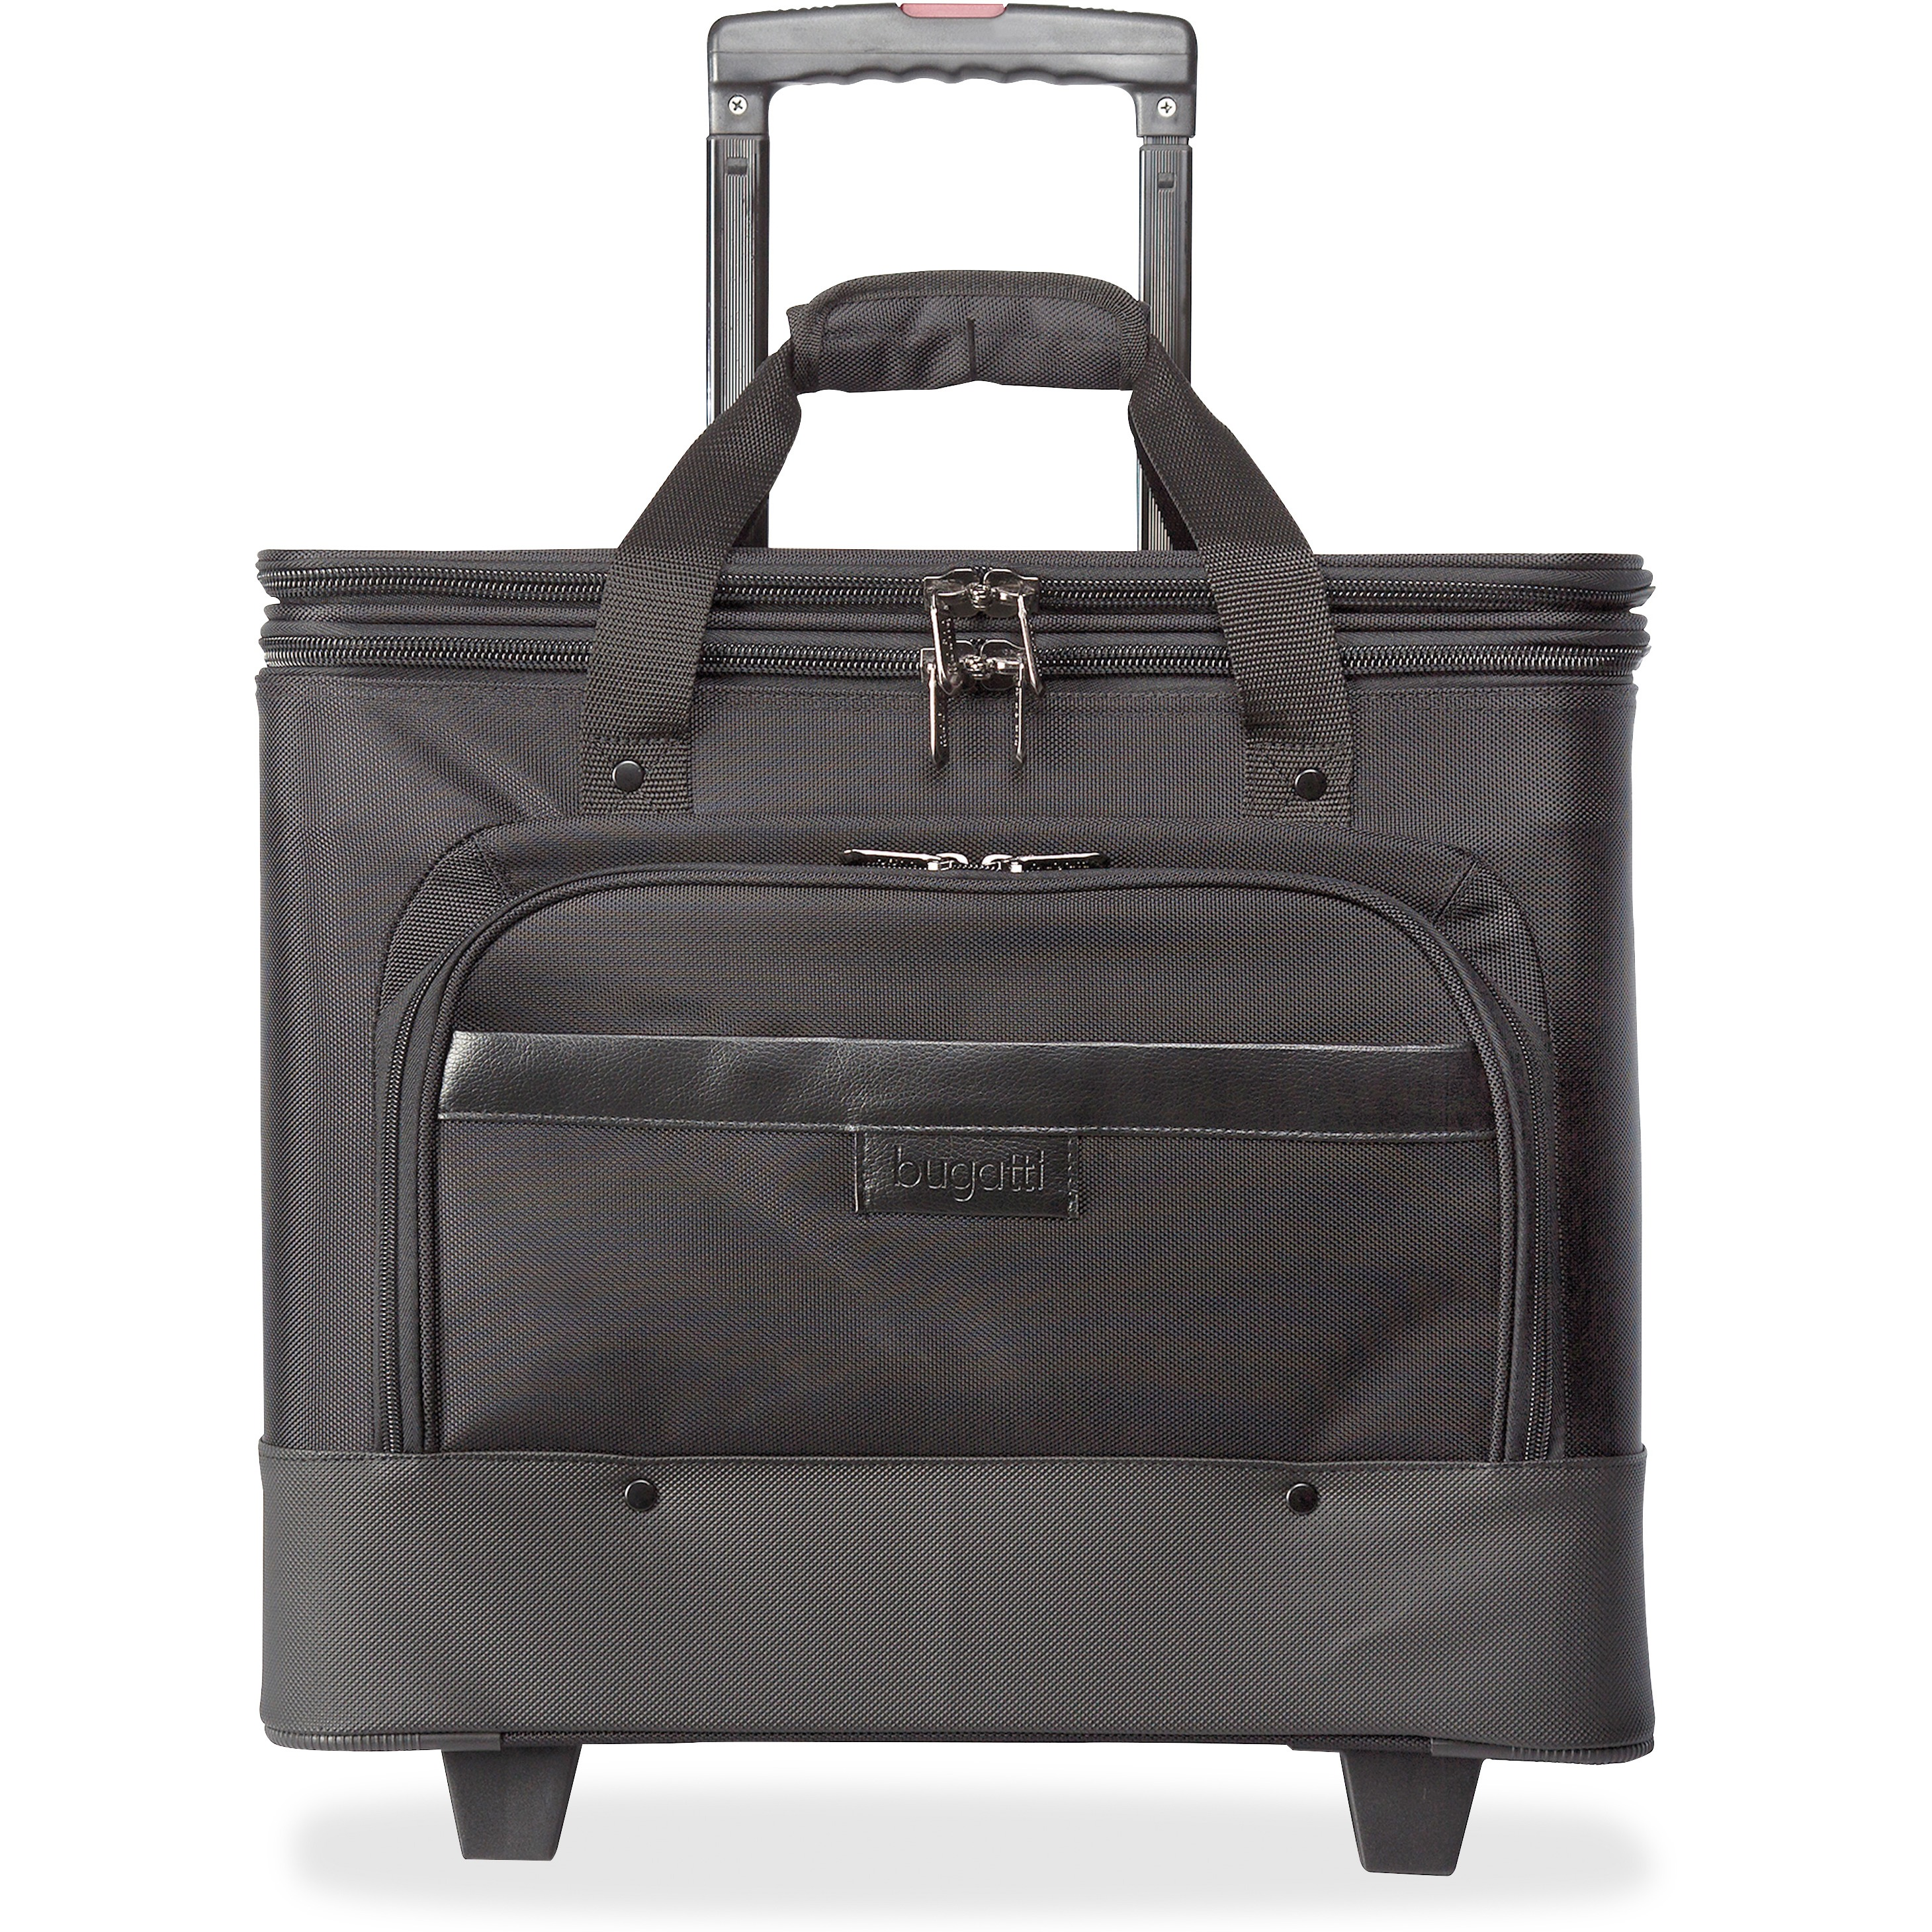 bugatti, STBBZCW1645, Stebco Business Case on Wheels, 1, Black